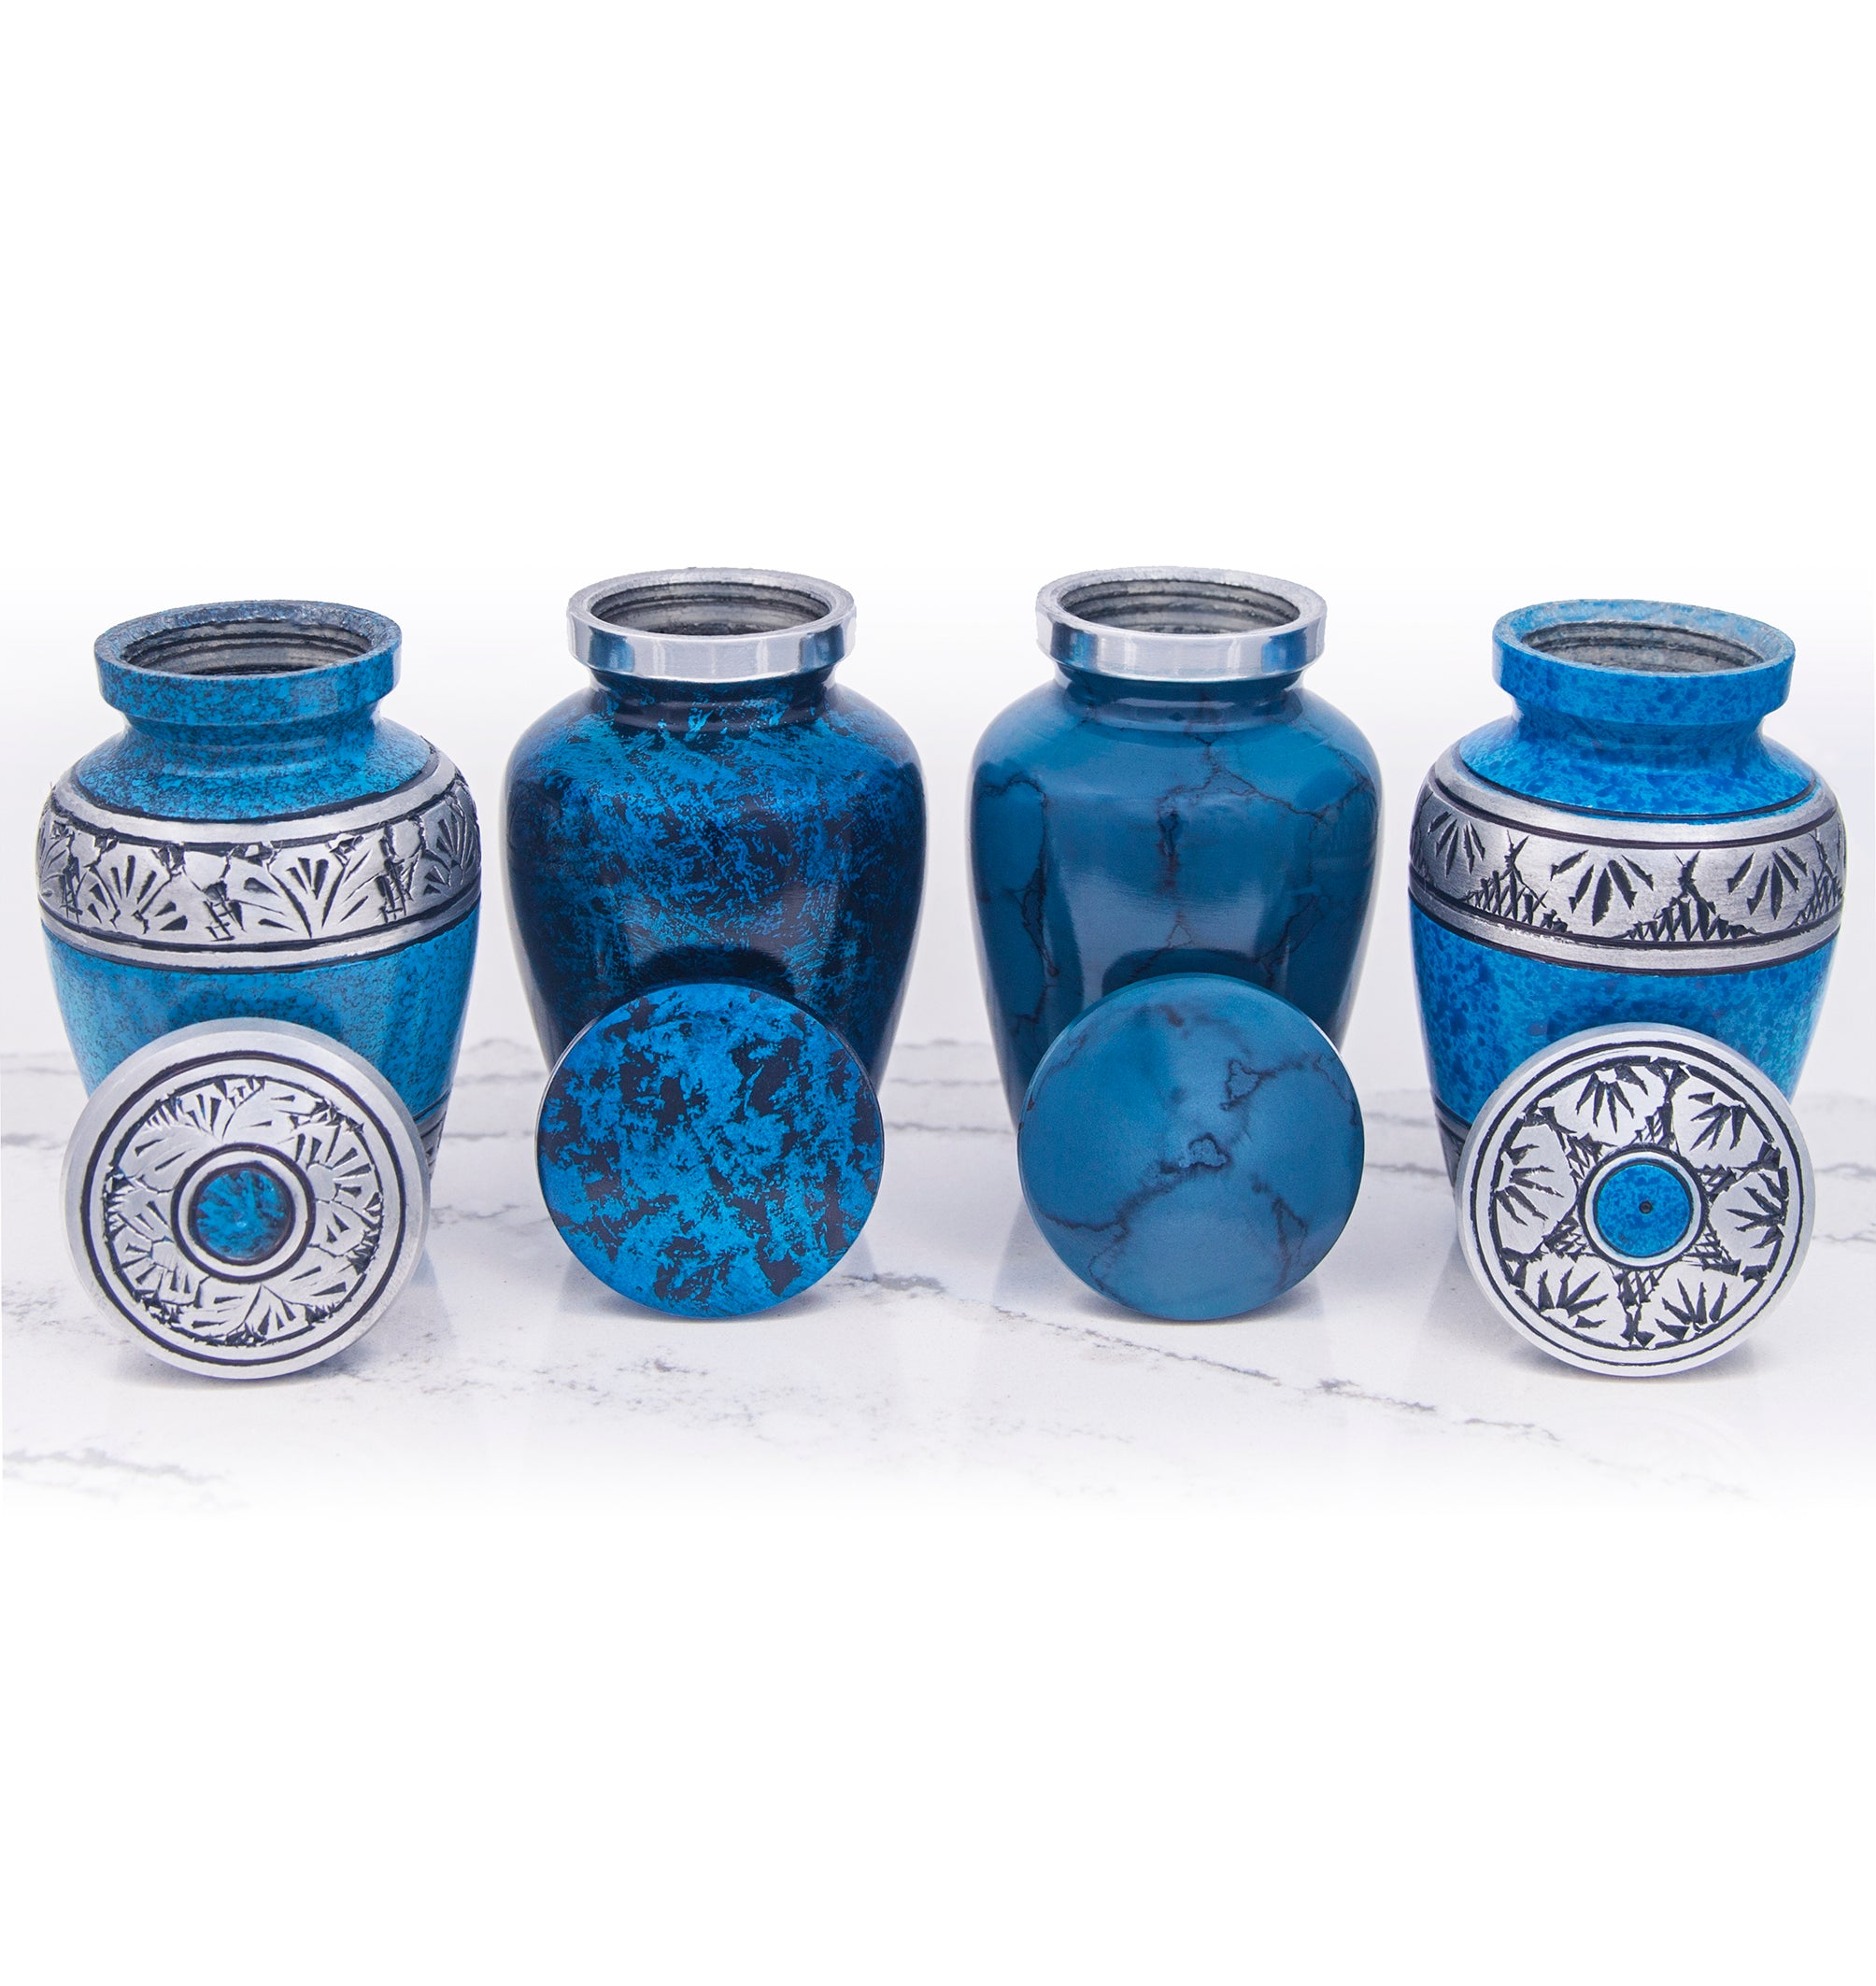 SMALL KEEPSAKE URN COLLECTION - 4 SHADES OF BLUE - SET OF 4